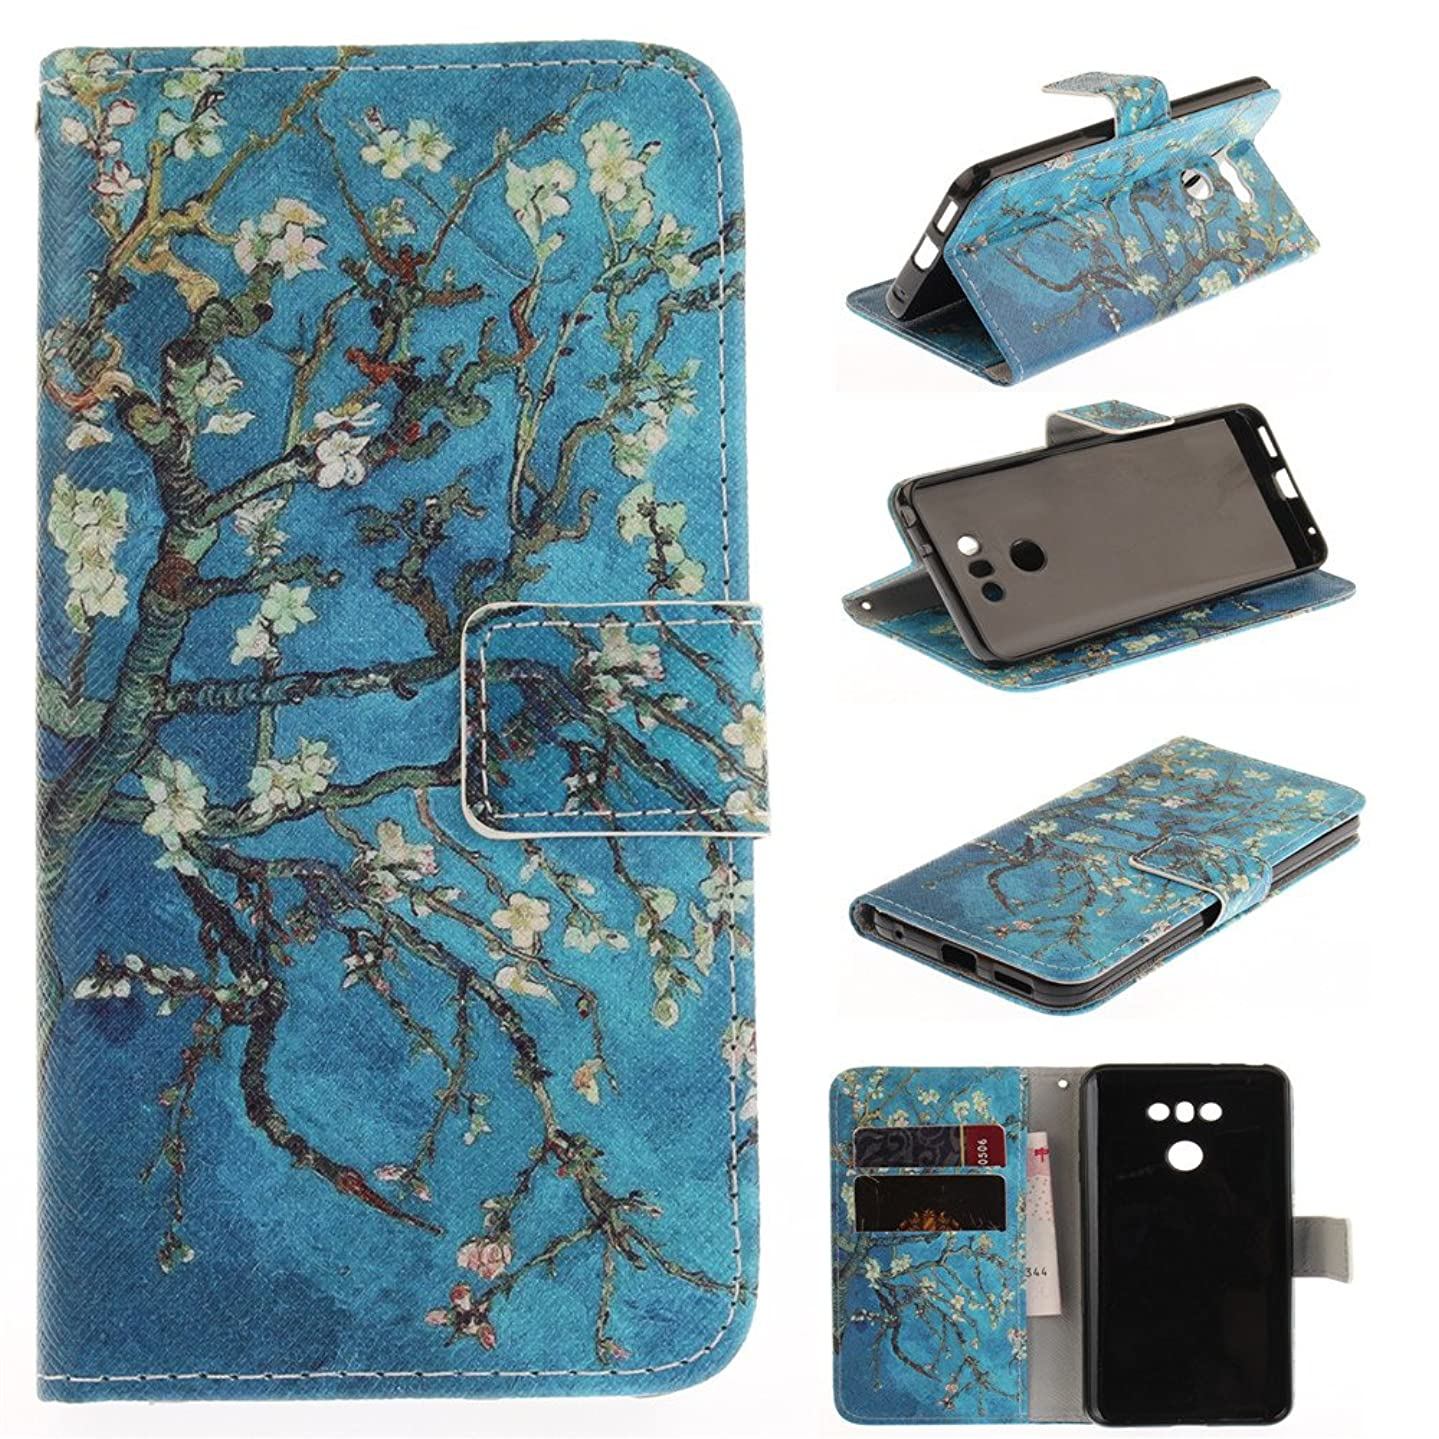 XYX Wallet Phone Case for LG G6,[Apricot Blossom Tree][Double Design][Kickstand][Card Slots] Premium PU Leather Phone Wallet Case for LG G6 (2017) H871 (AT&T) / H872 (T-Mobile) / LS993 (Sprint)